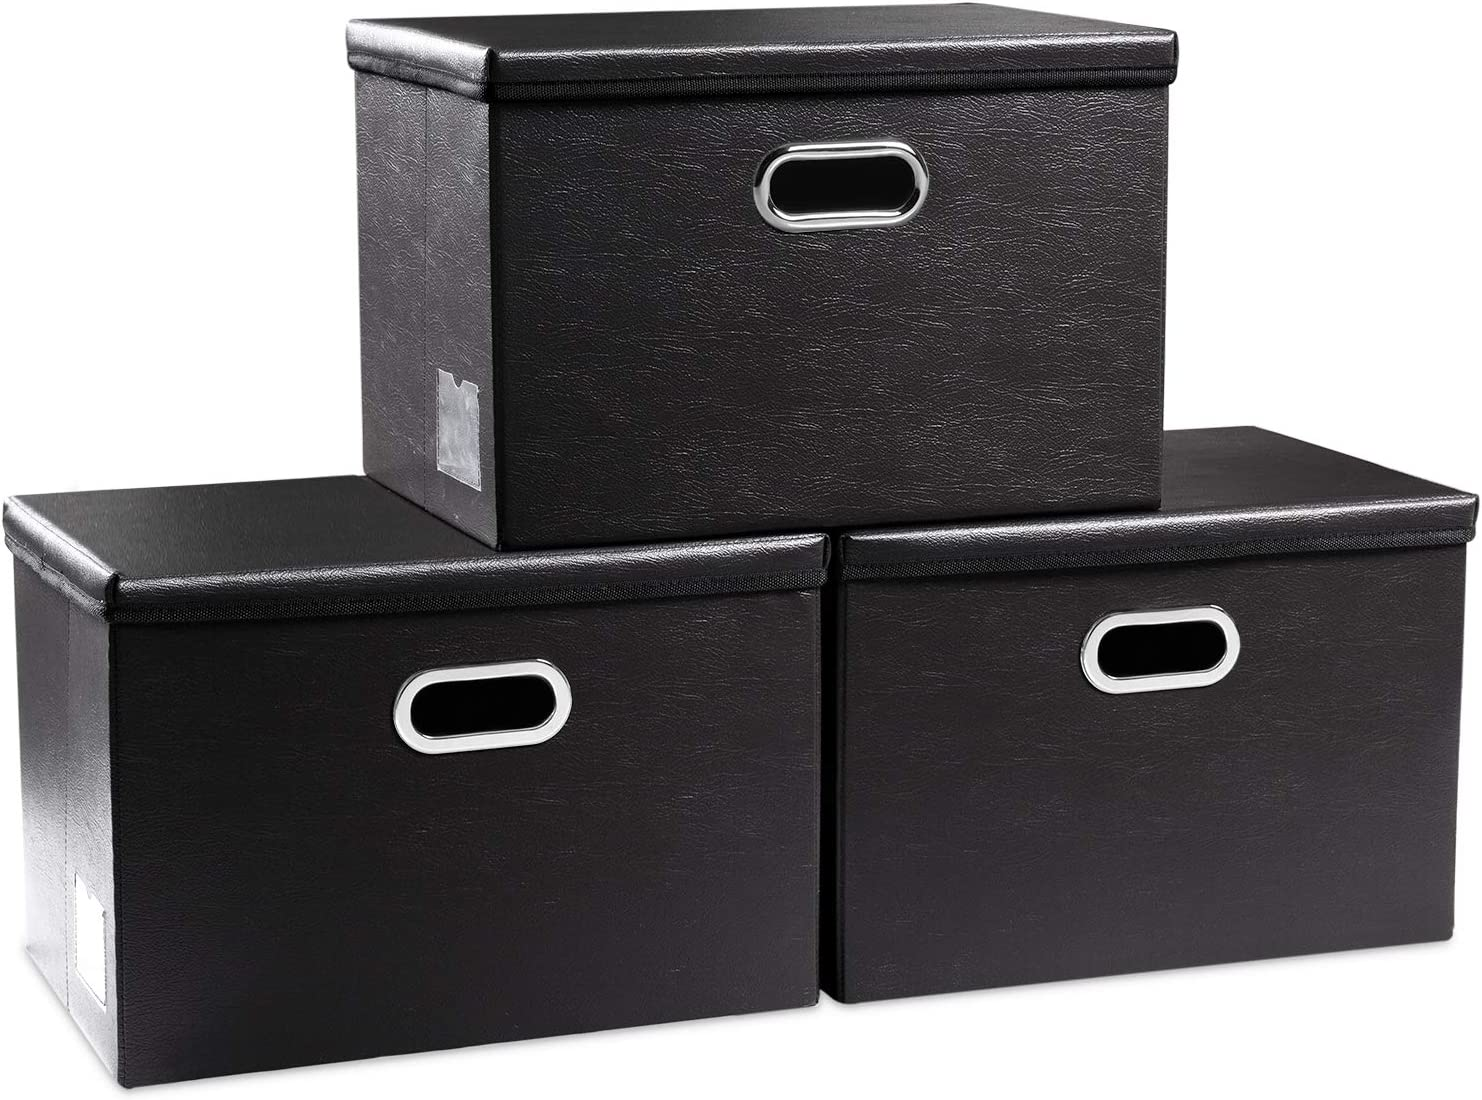 Prandom Large Foldable Storage Bins with Lids [3-Pack] Leather Fabric Collapsible Storage Boxes Organizer Containers Baskets Cube with Cover for Home Bedroom Closet Office Black(17.7x11.8x11.8)